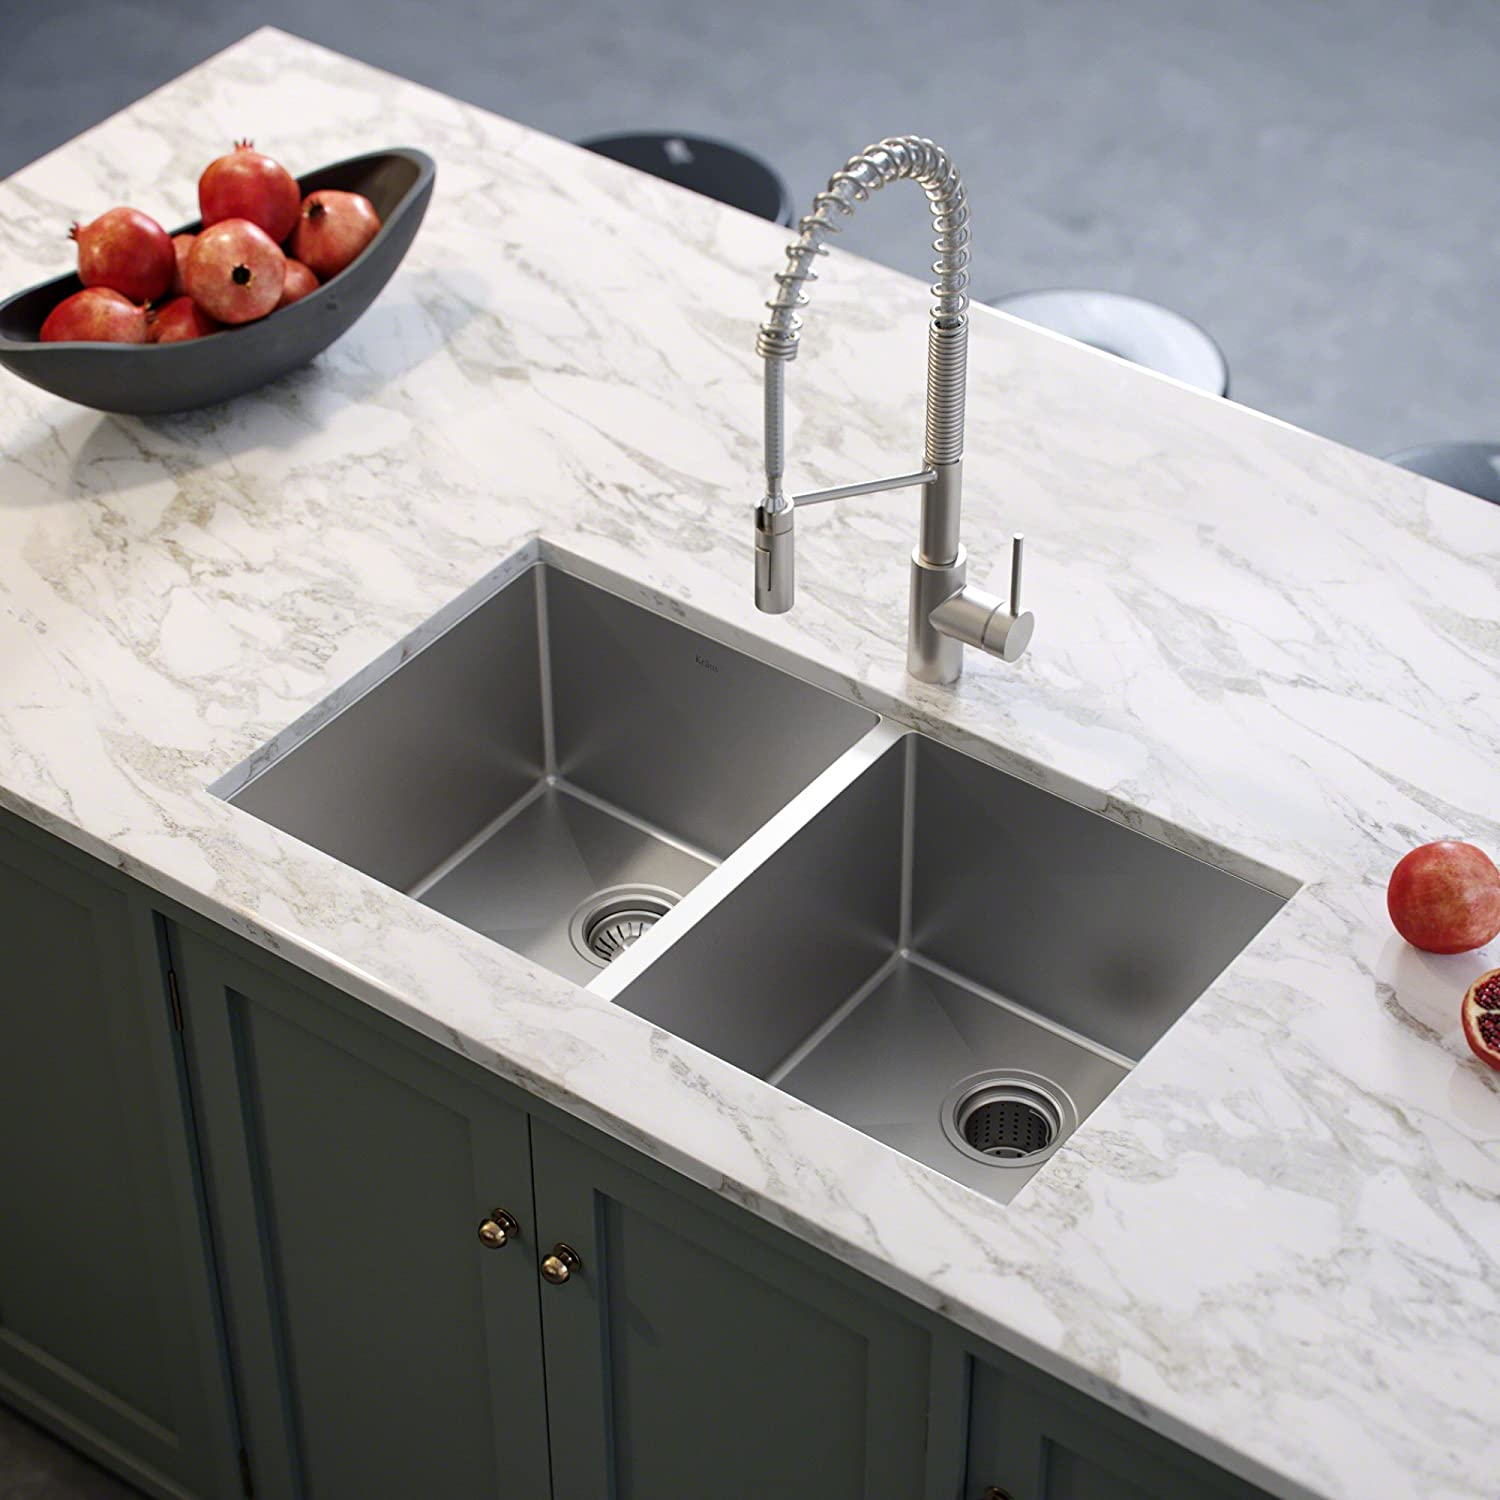 Best Stainless Steel Sinks 2019 (list of sinks that doesn't ) on install laundry sink, install kohler kitchen sink, double sink install a kitchen sink, install bathroom sink, granite composite kitchen sink, install farmhouse kitchen sink, install shower, install faucet kitchen sink, install kitchen sink sprayer, install kitchen backsplash,